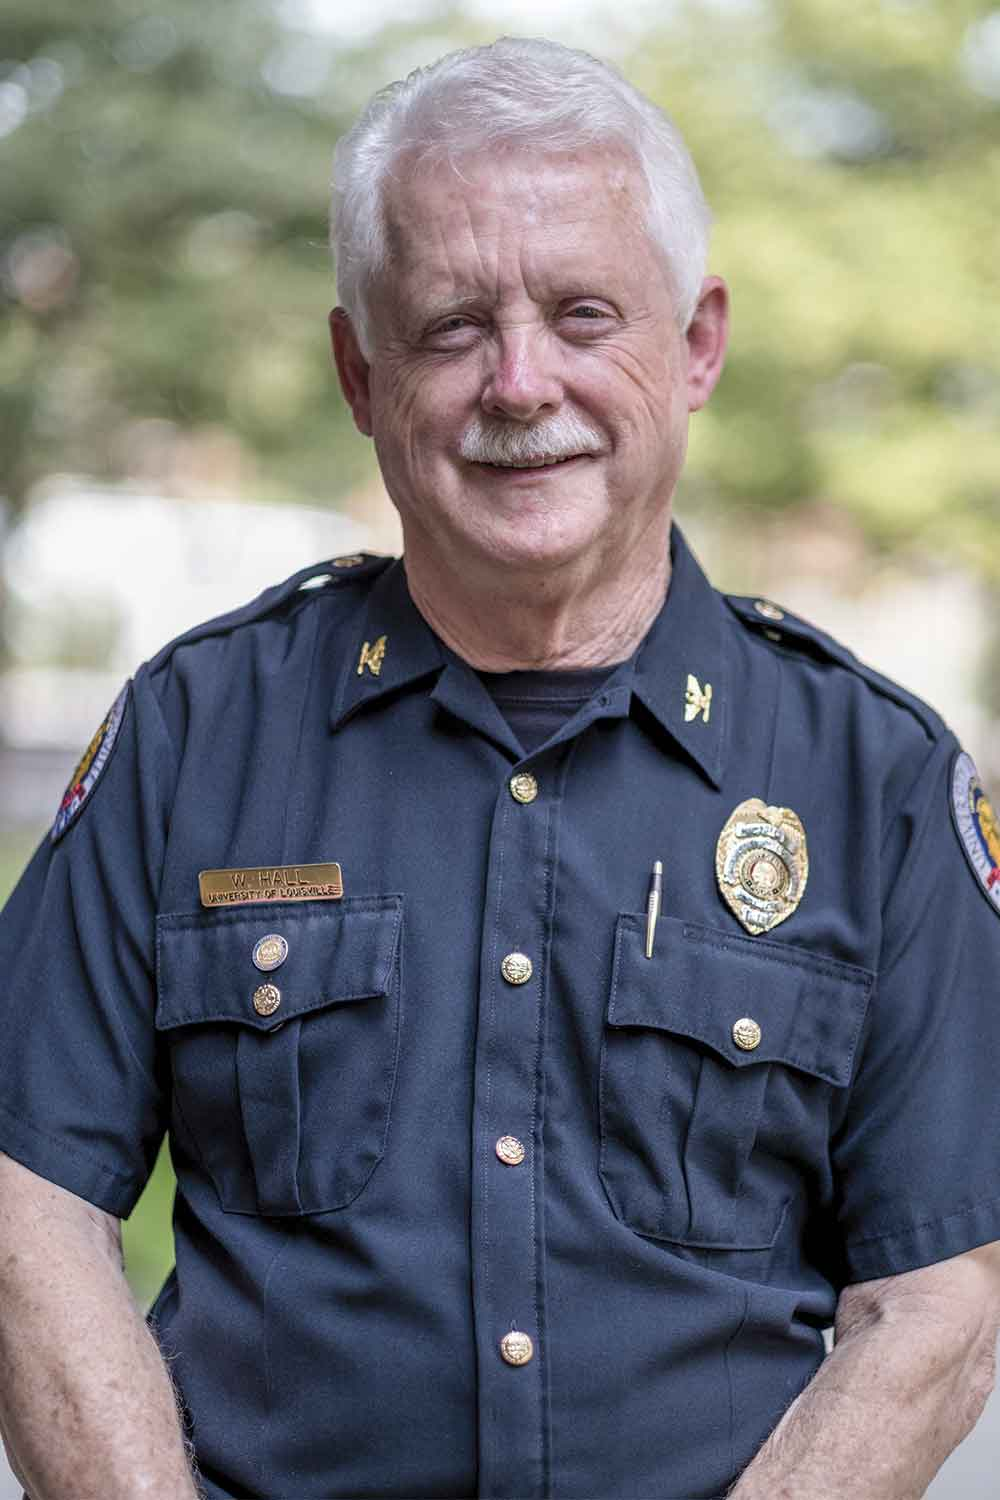 Chief Wayne Hall has served the University of Louisville Police Department for 25 years. He and his staff are responsible for serving a campus of approximately 30,000 students, faculty, staff and visitors every day. (Photo by Jim Robertson)